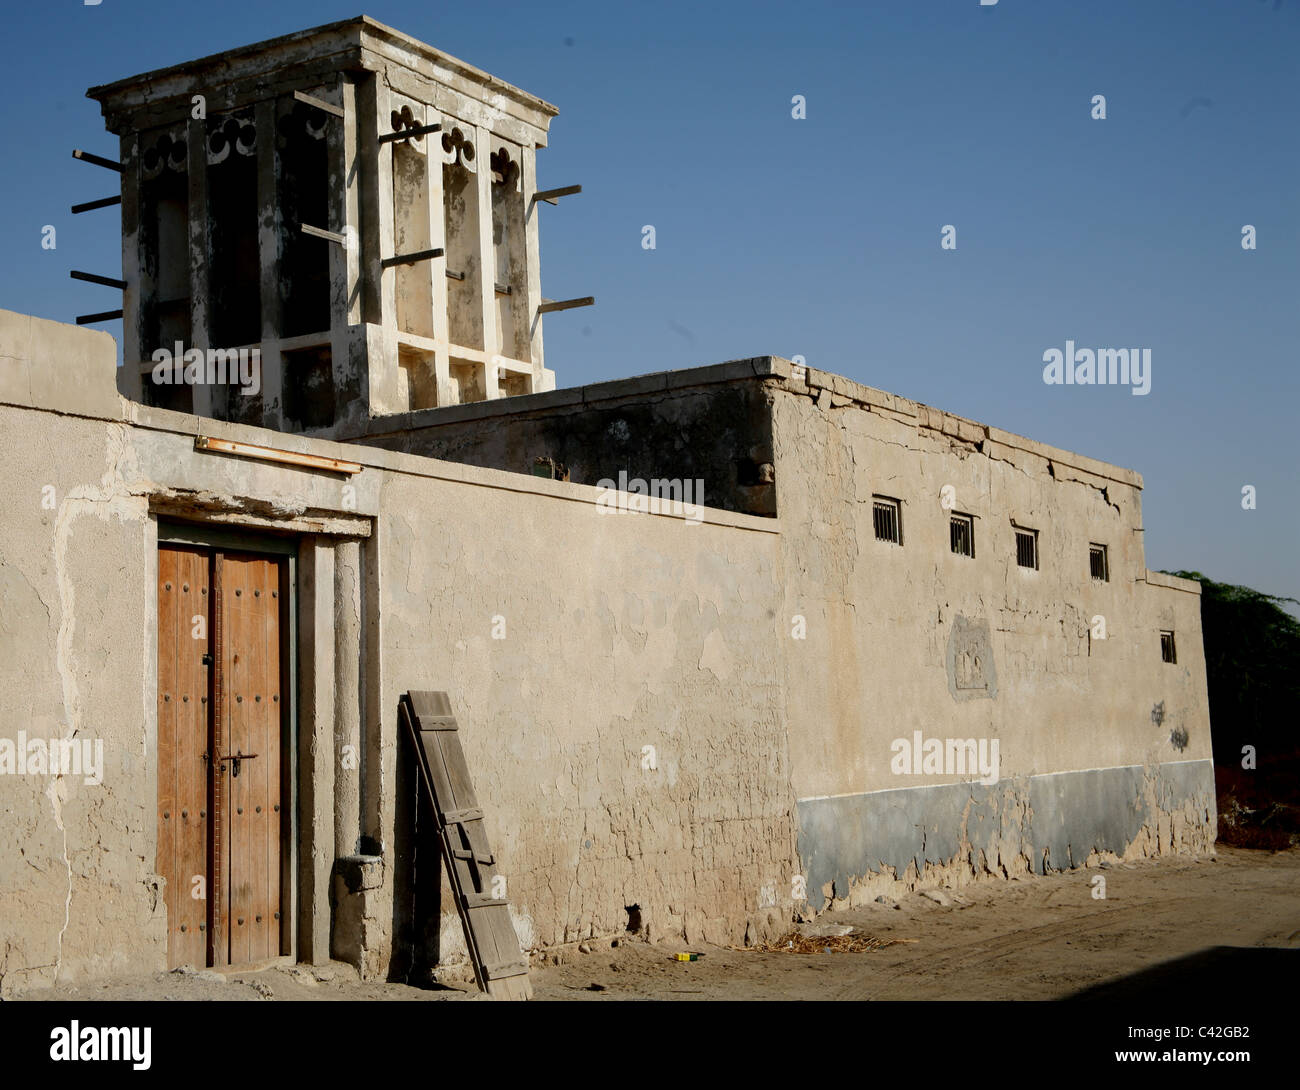 old house with wind tower in jasira quarter of ras al